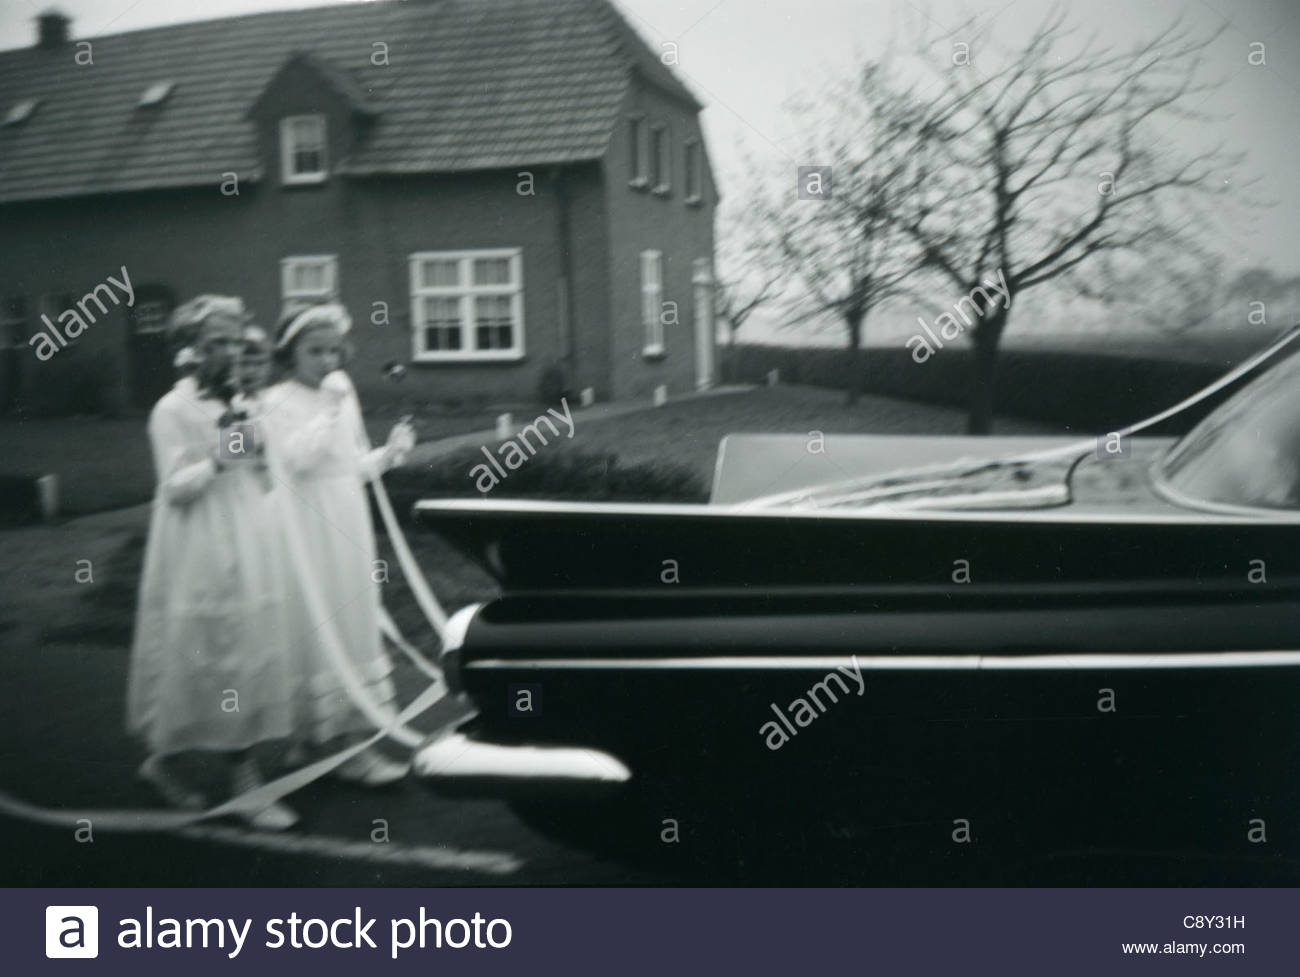 Brides maids following the brides and grooms wedding car - Stock Image